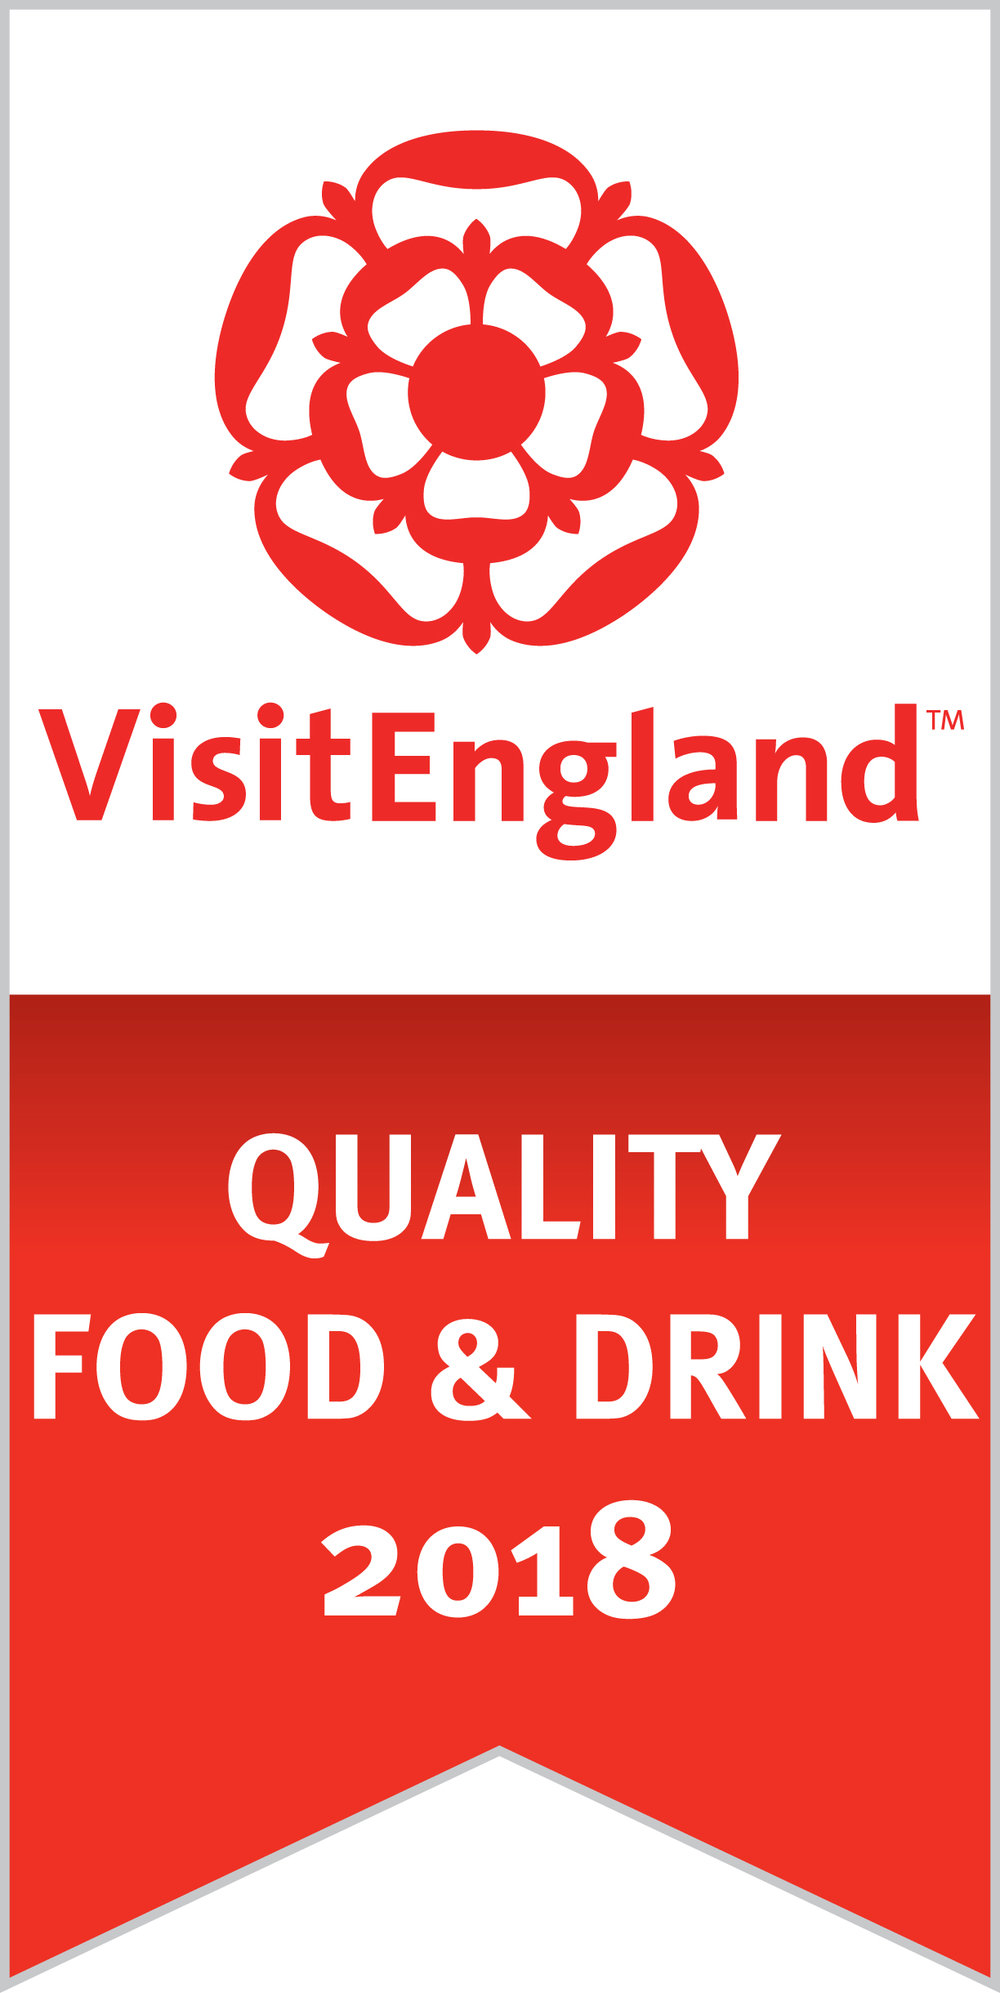 Quality Food and Drink - 2018